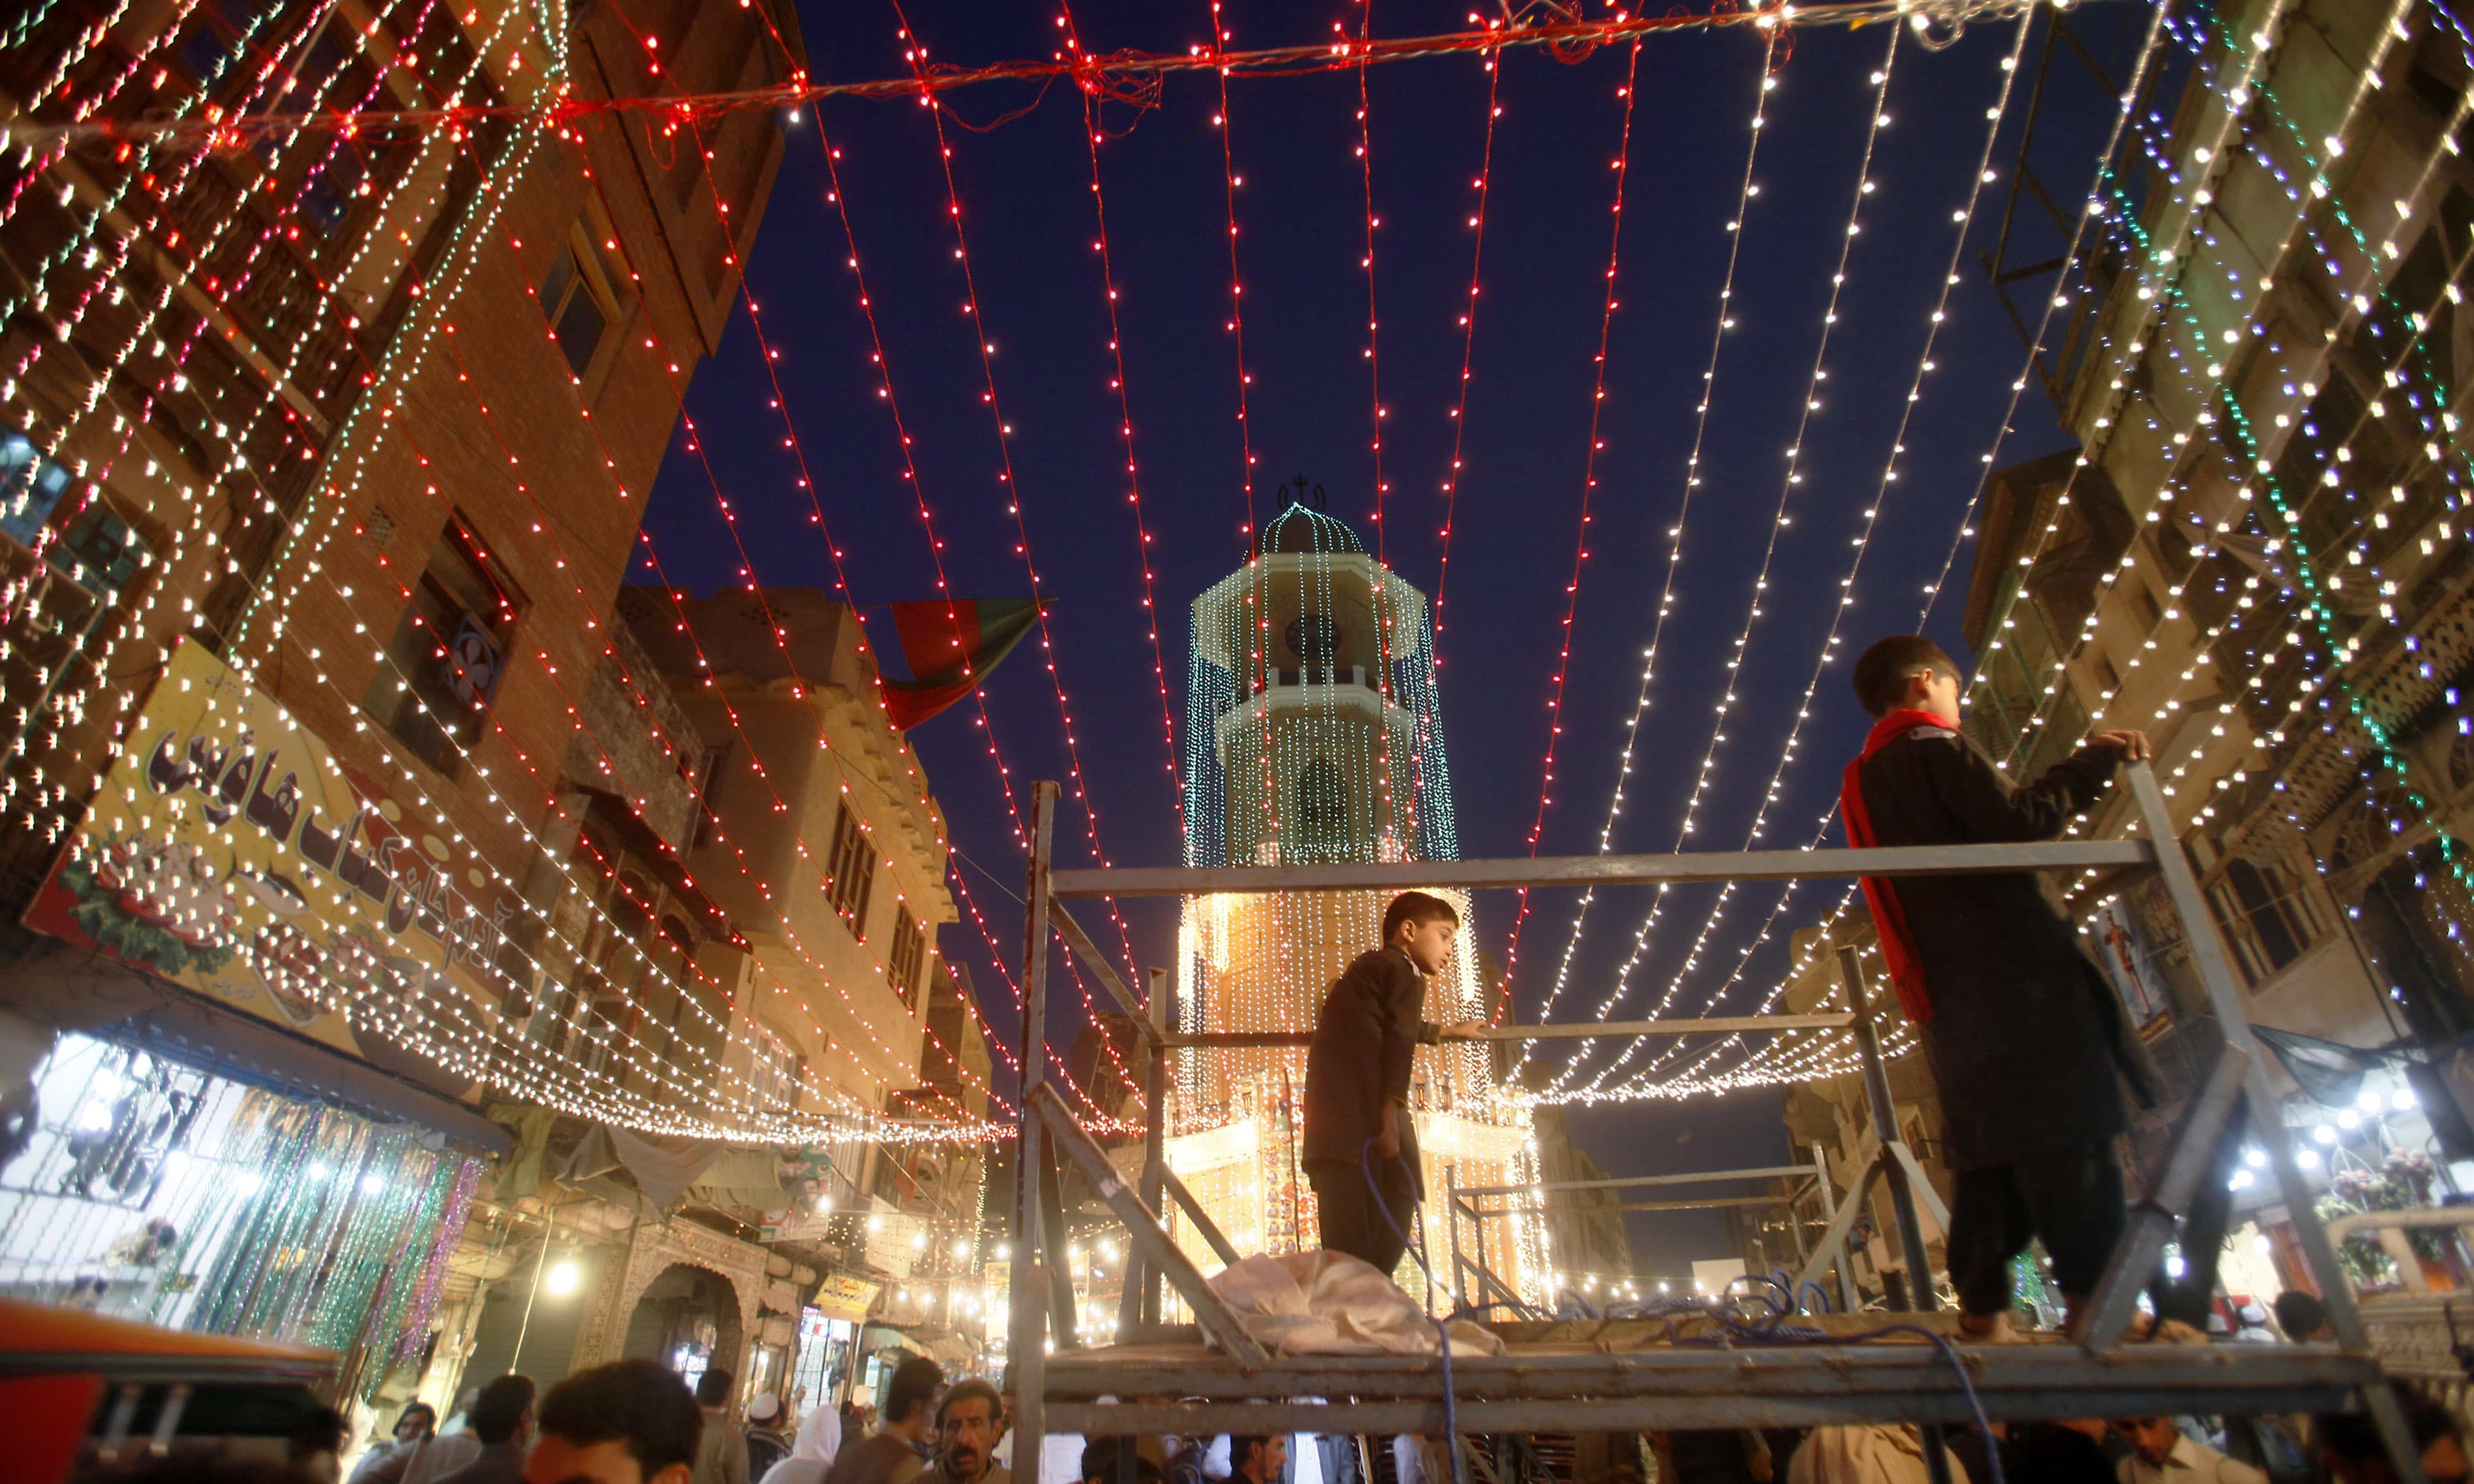 Markets are decorated with lights as part of the celebrations. —AFP